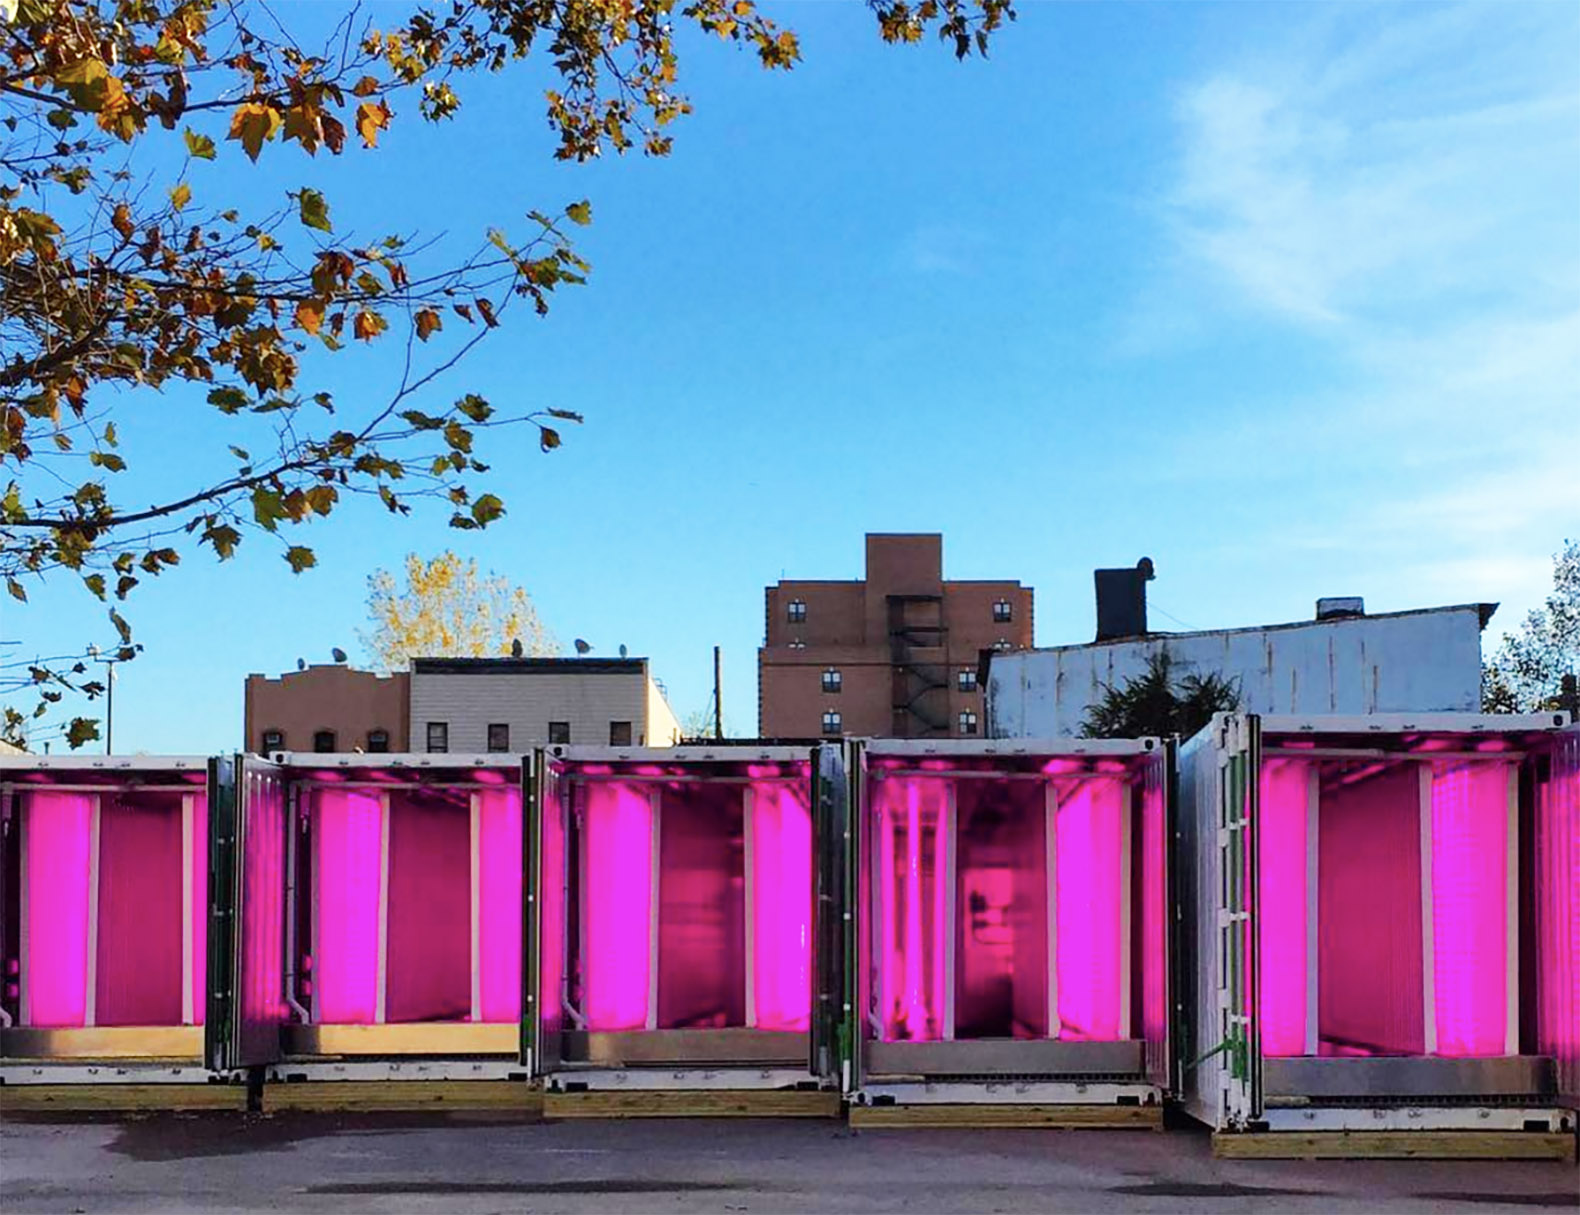 Kimbal Musk launches a revolutionary shipping container farm initiative in Brooklyn